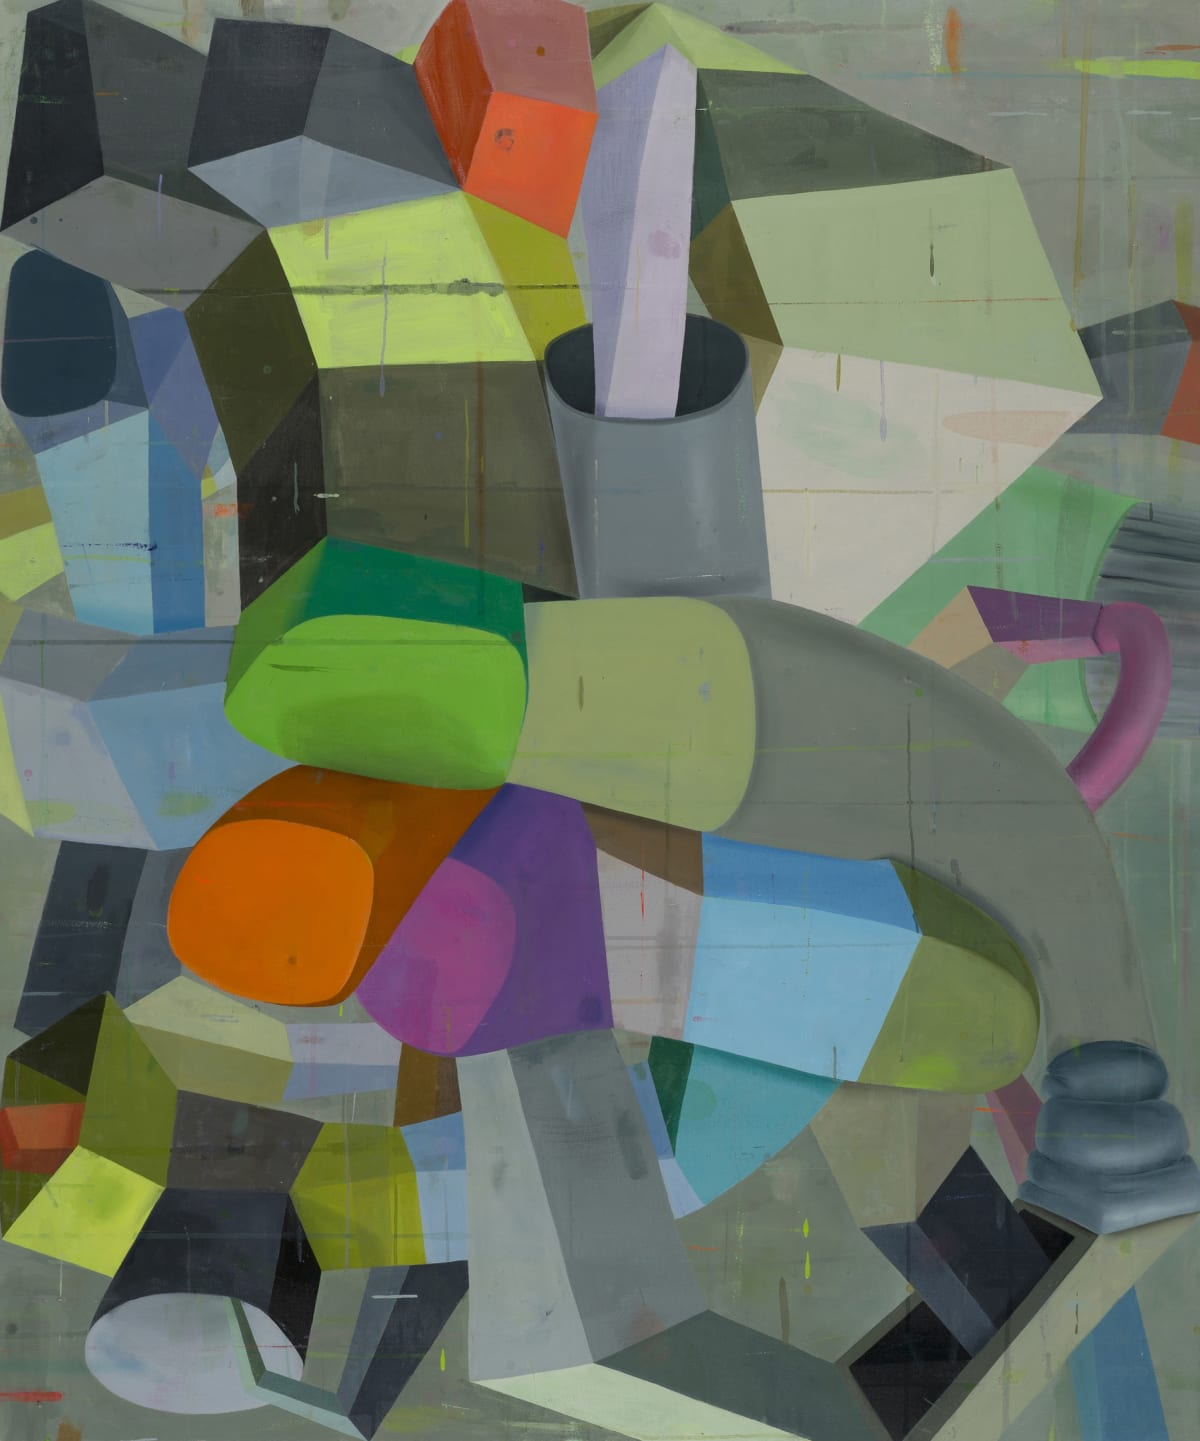 """Deborah Zlotsky's """"Pittsburgh left"""" oil painting on canvas in various shades of gray, green, red, purple and blue. The painting depicts several three dimensional surreal shapes that gives a sense of cubism and depth with the shapes overlapping each other."""